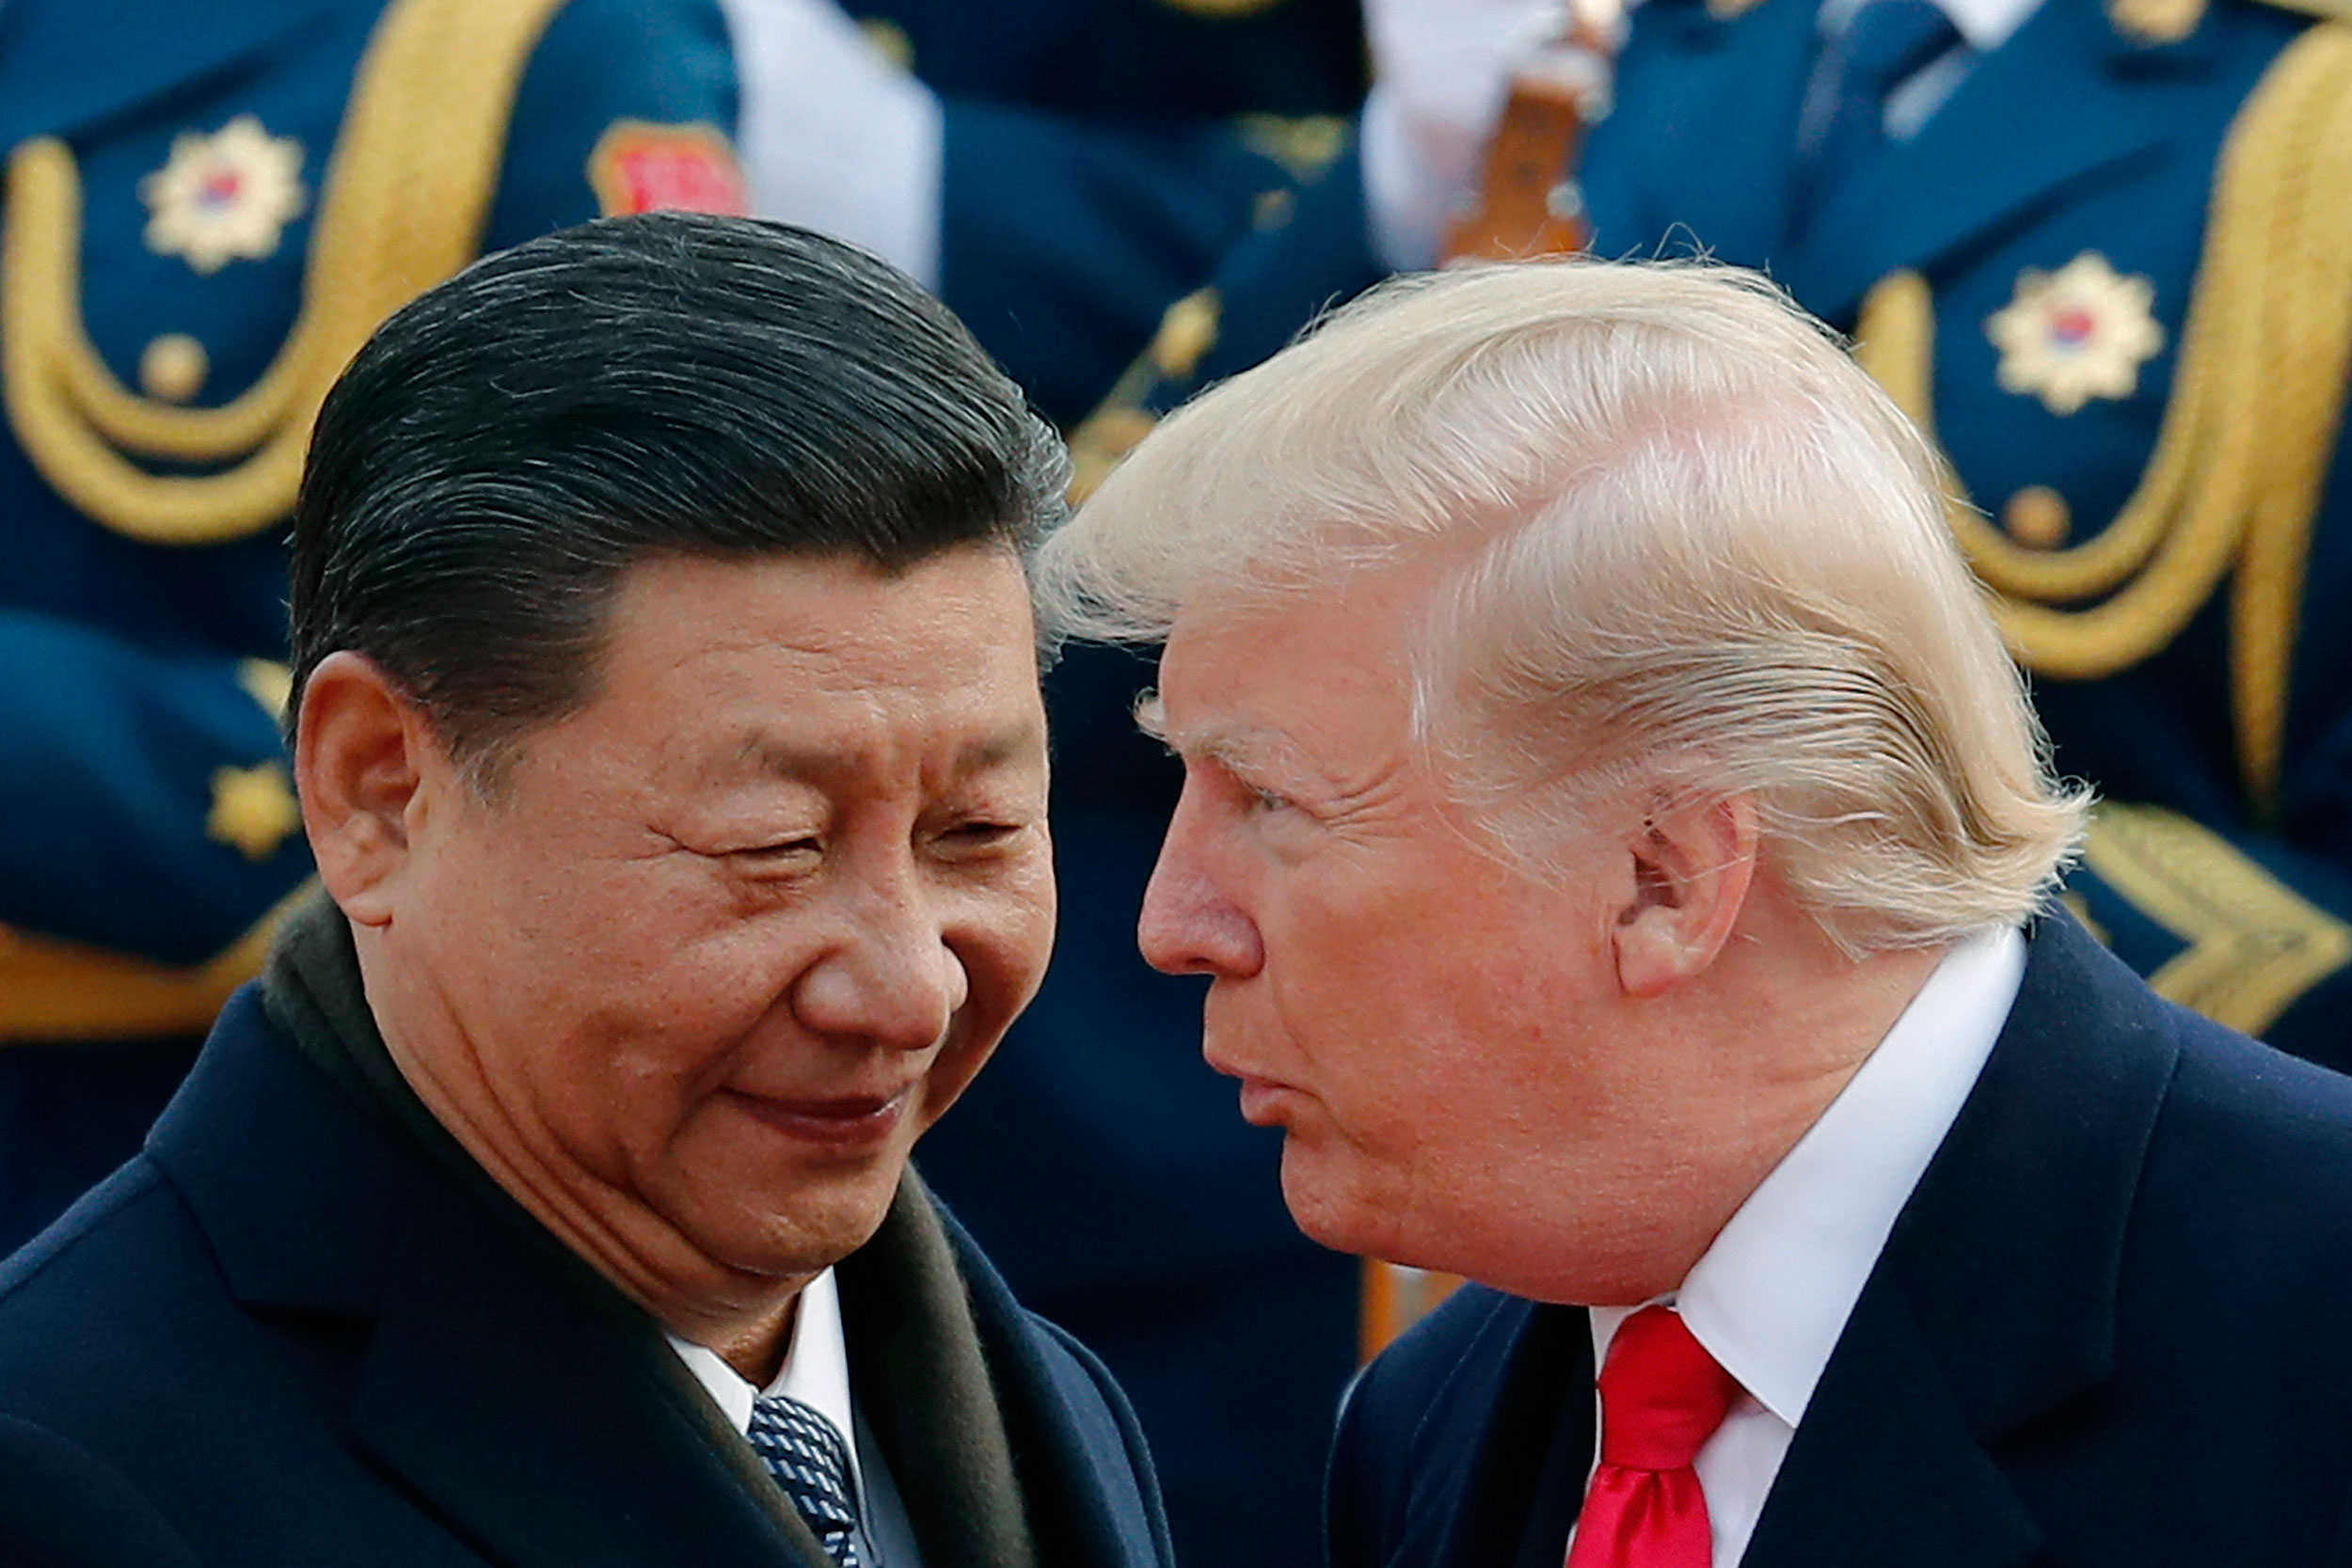 US President Donald Trump chats with Chinese President Xi Jinping during a welcome ceremony at the Great Hall of the People in Beijing.